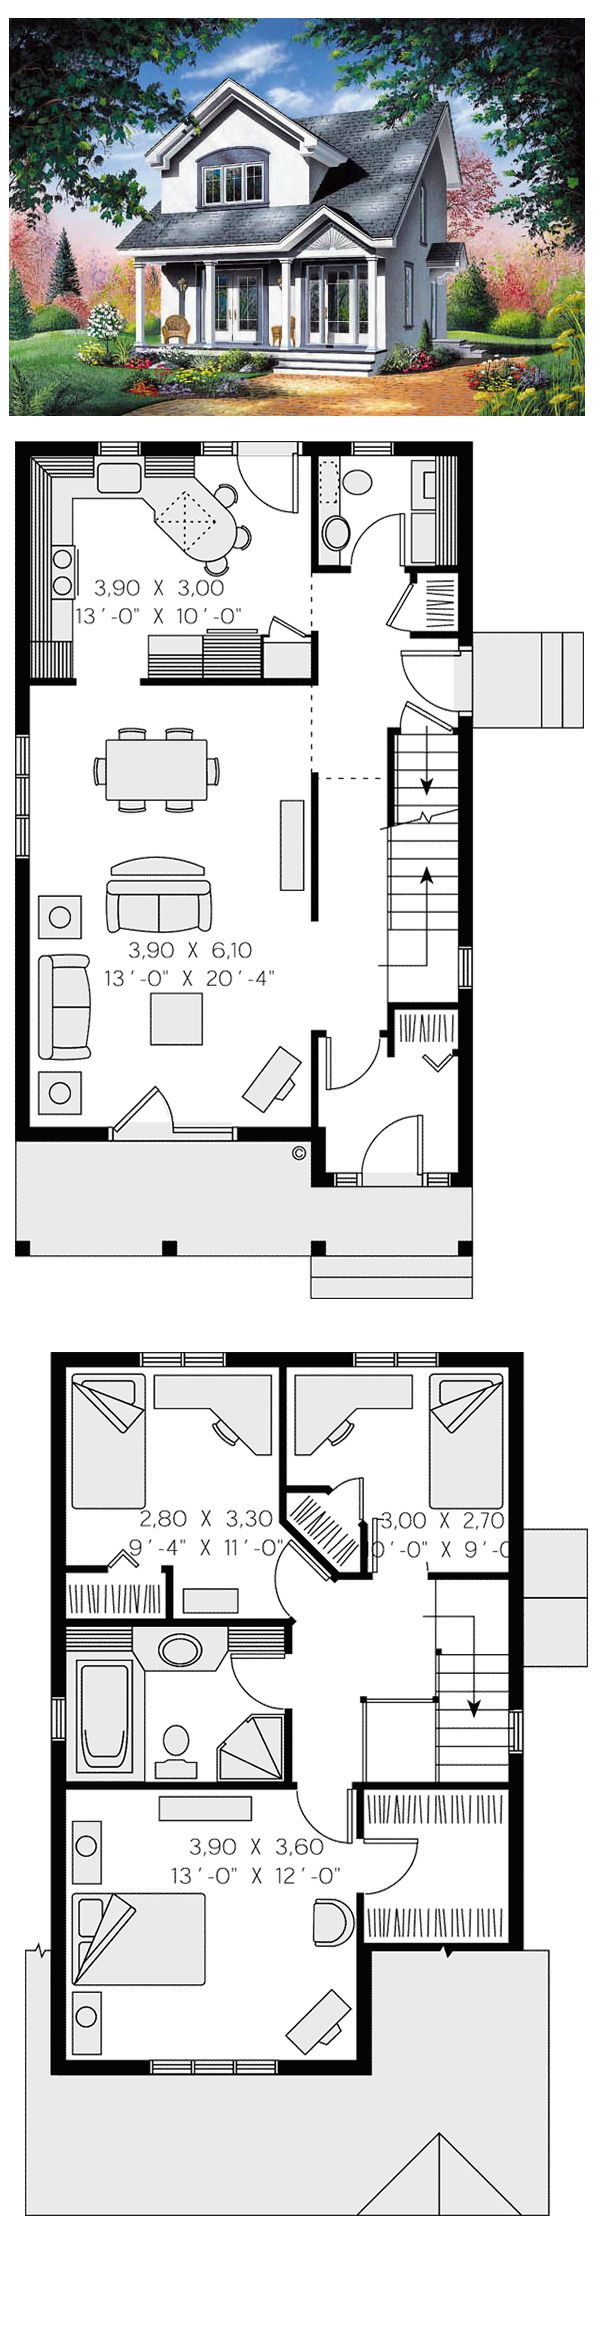 Home Design Layout inspiration modern architecture floor plans modern design homes plans contemporary house designs and floor plans 25 Best Ideas About Small House Layout On Pinterest Small Home Plans Tiny Cottage Floor Plans And Small Cottage Plans